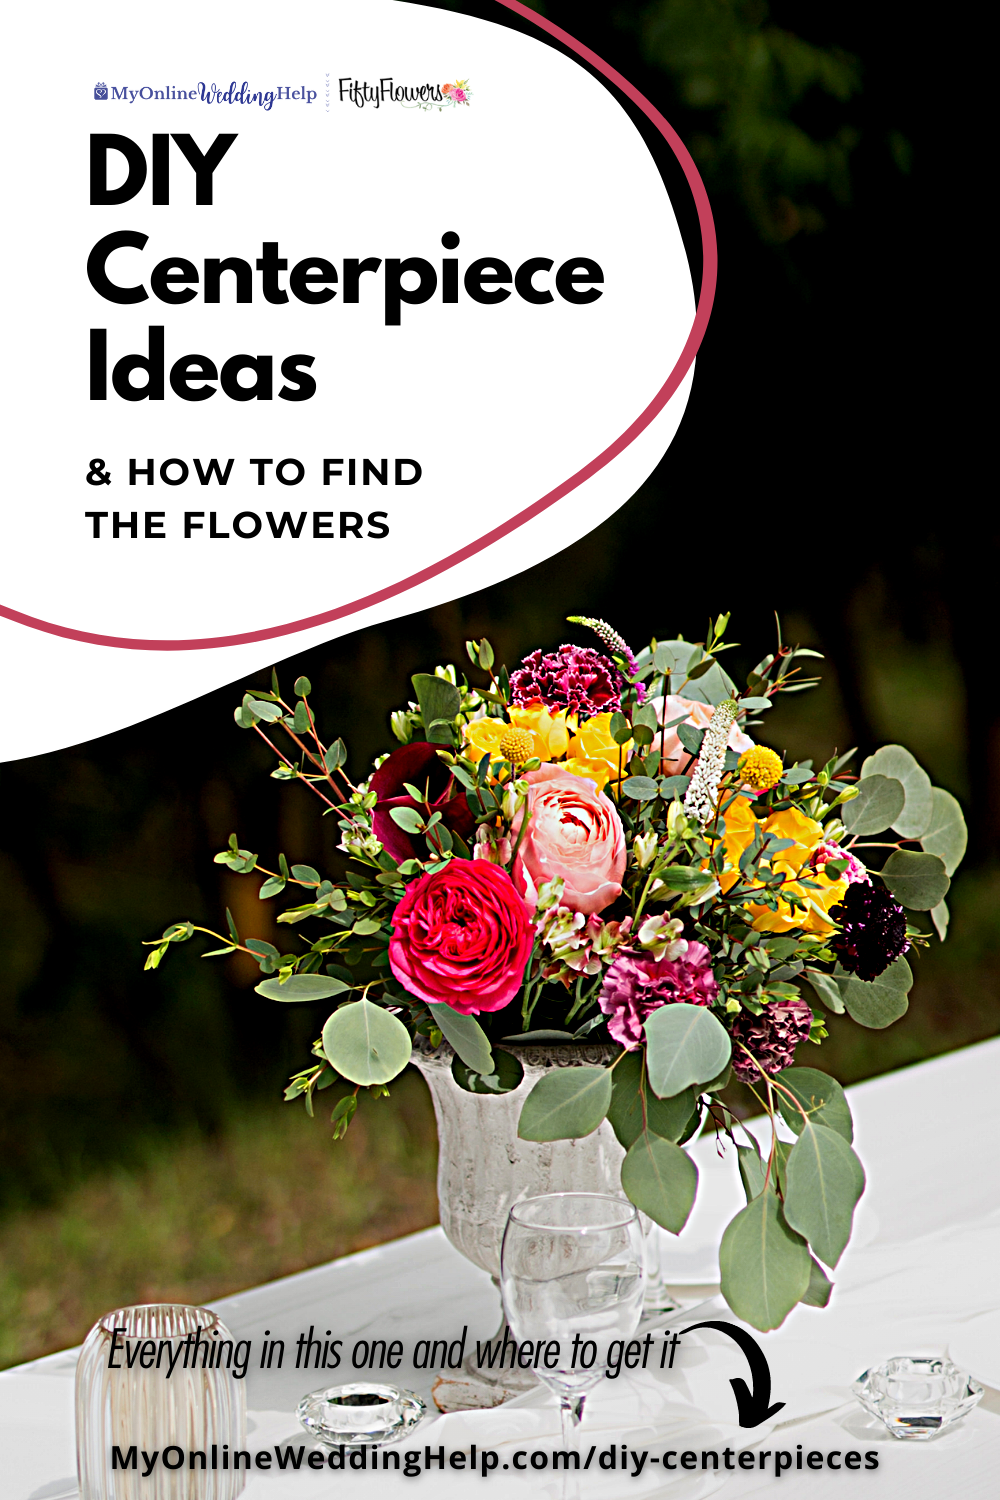 DIY Centerpiece Ideas & How to Find the Flowers text with picture of centerpiece.